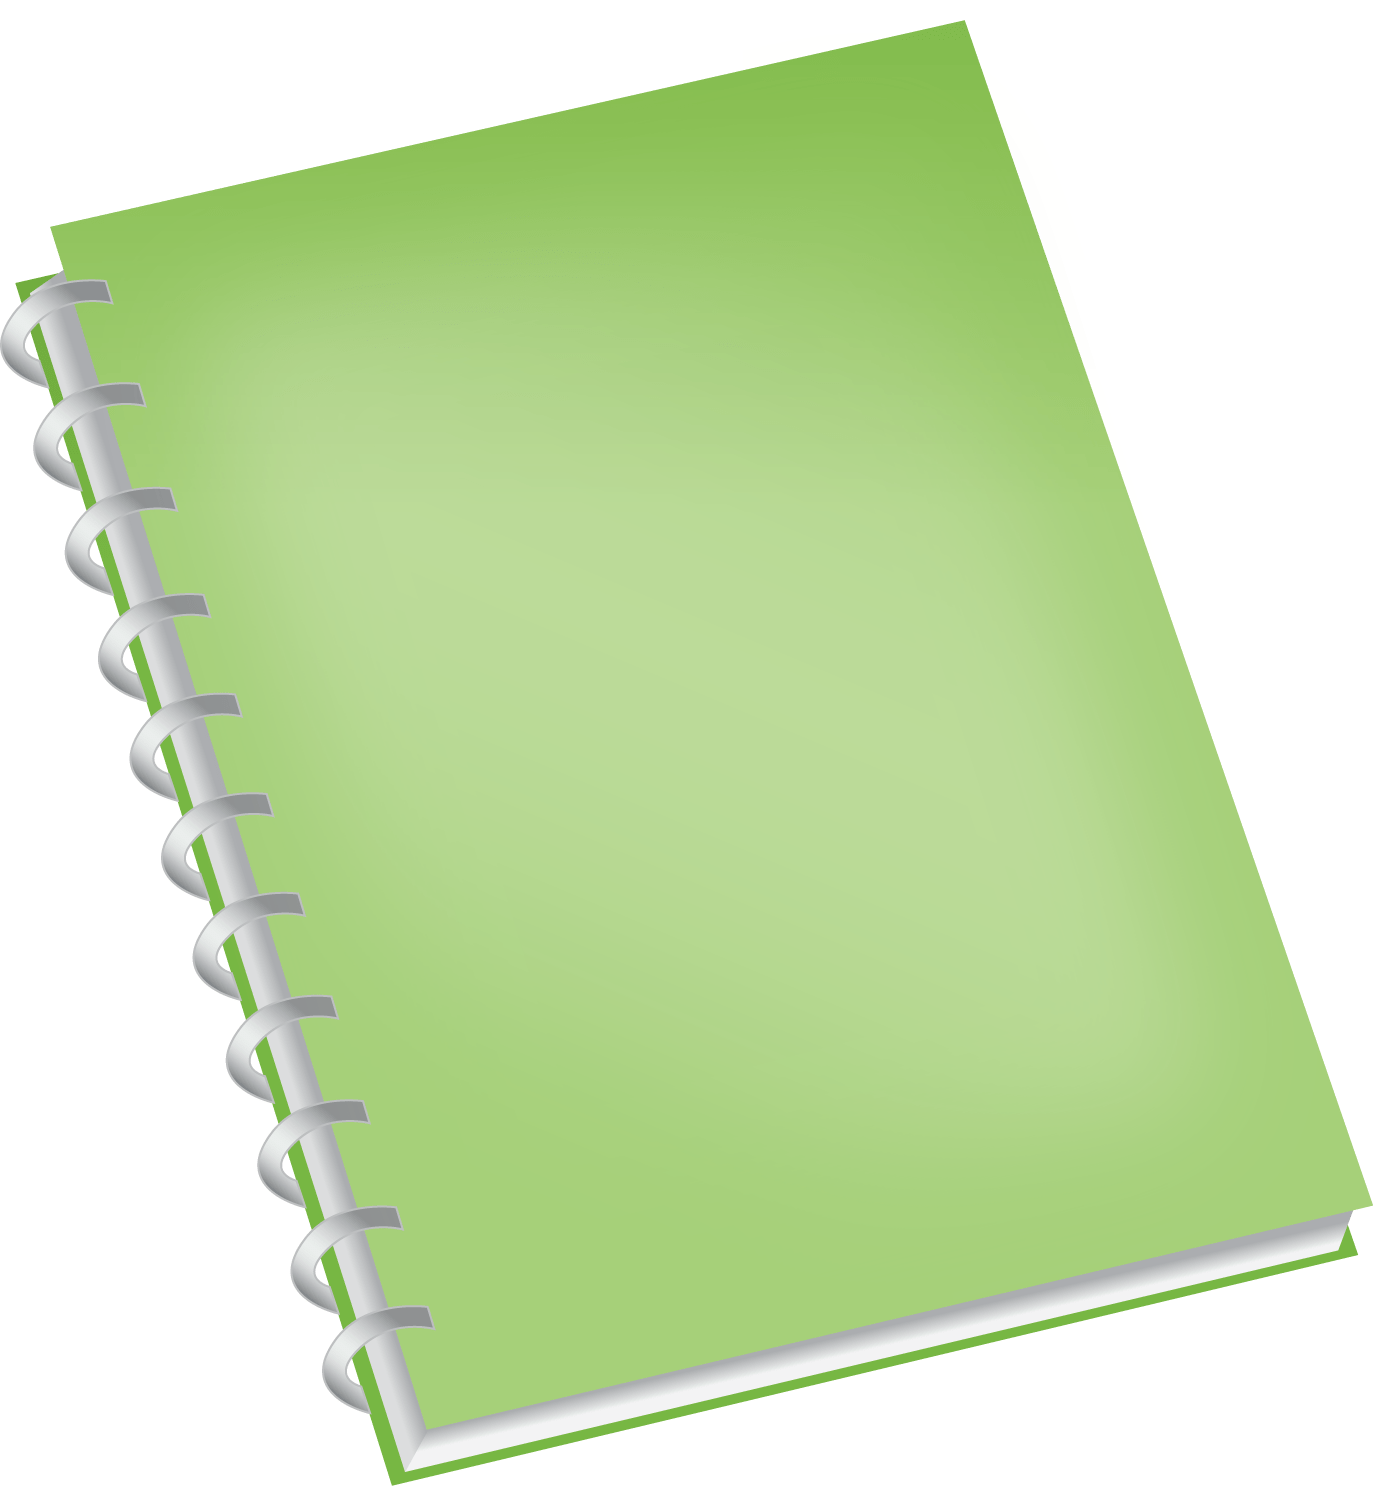 Notebook cover png. Green transparent stickpng objects